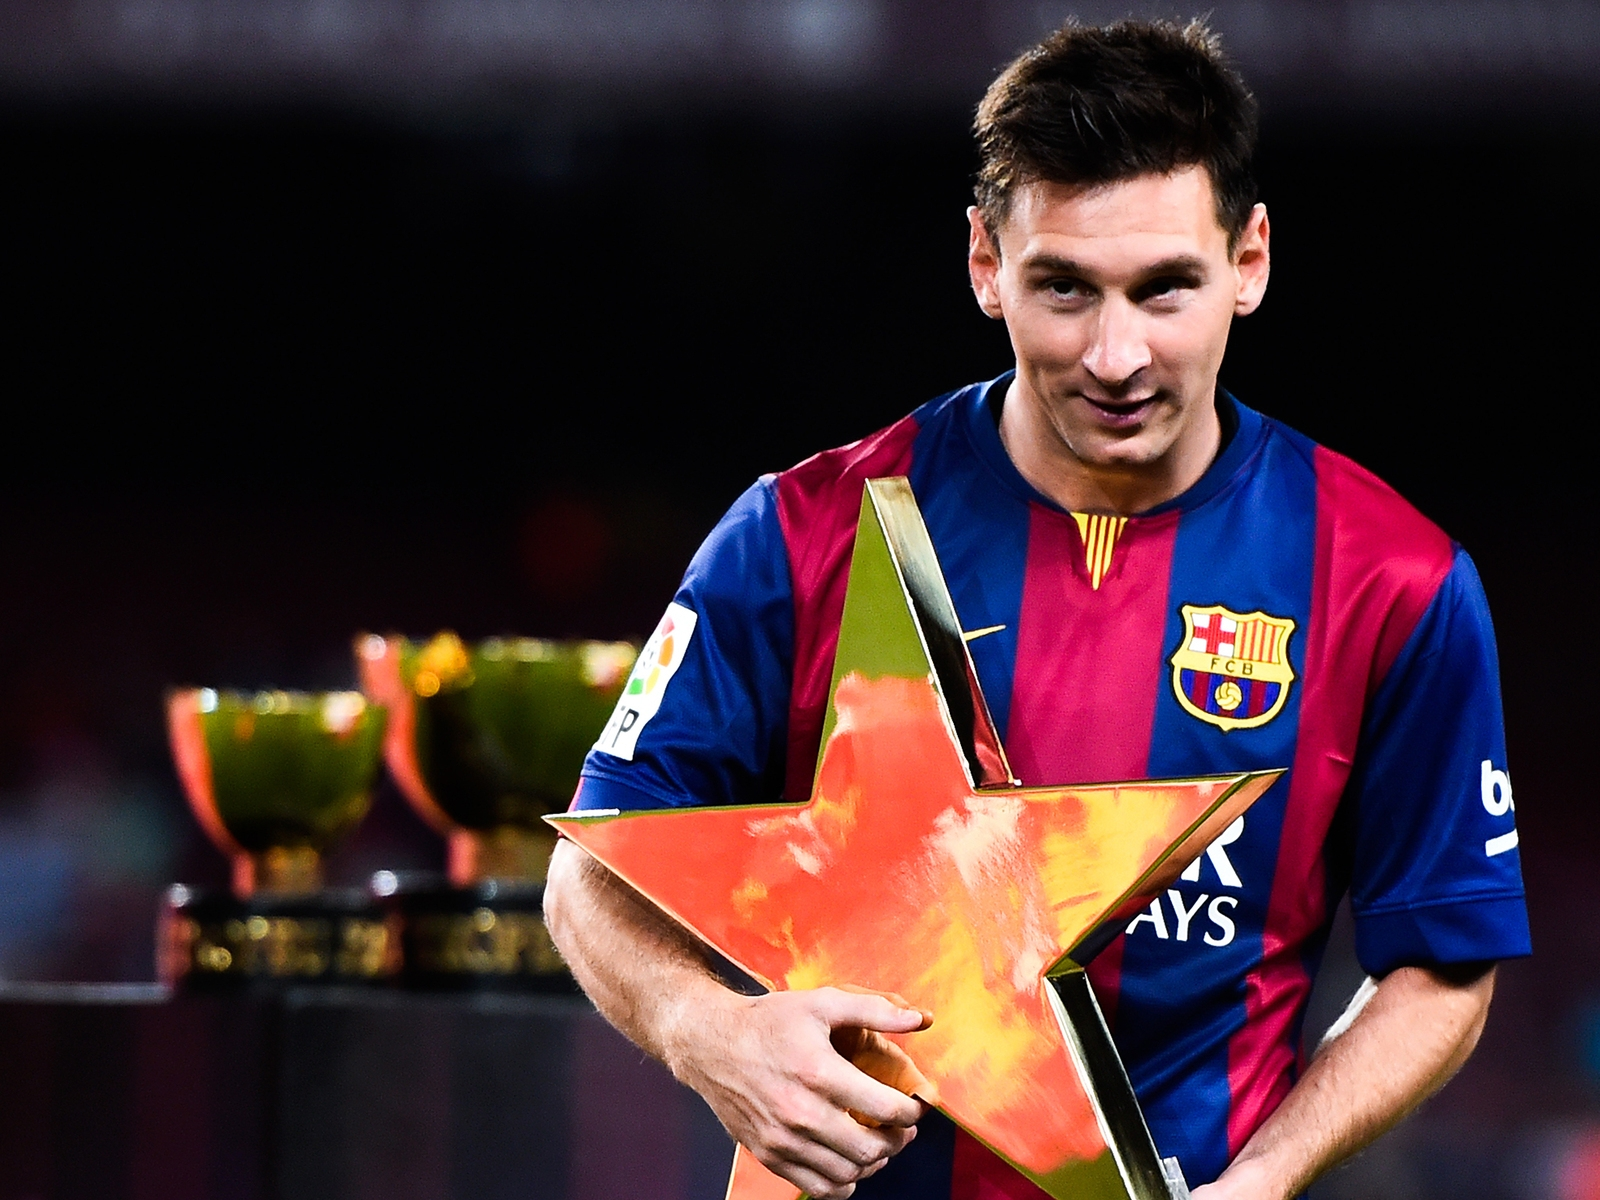 Messi Star Shaped Award for 1600 x 1200 resolution